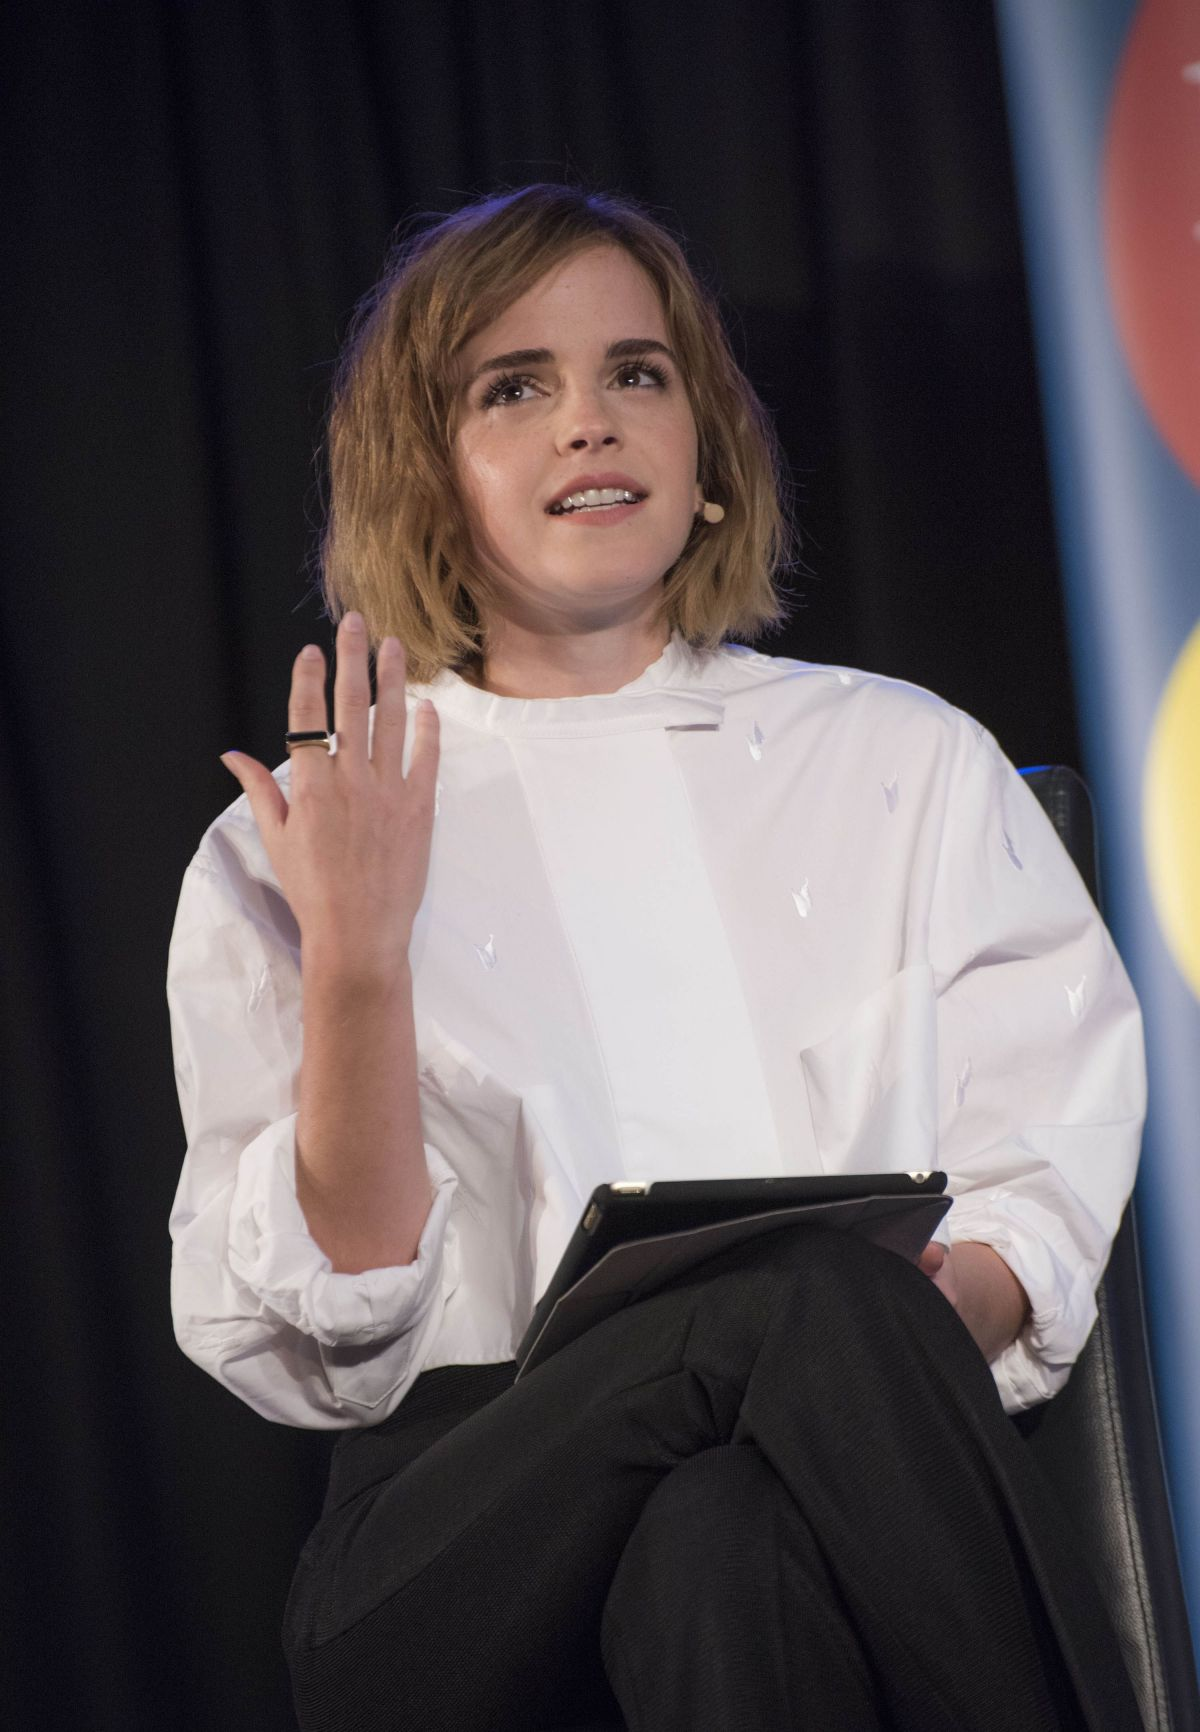 EMMA WATSON at Evening with Gloria Steinem at Emmanuel Centre in London 02/24/2016